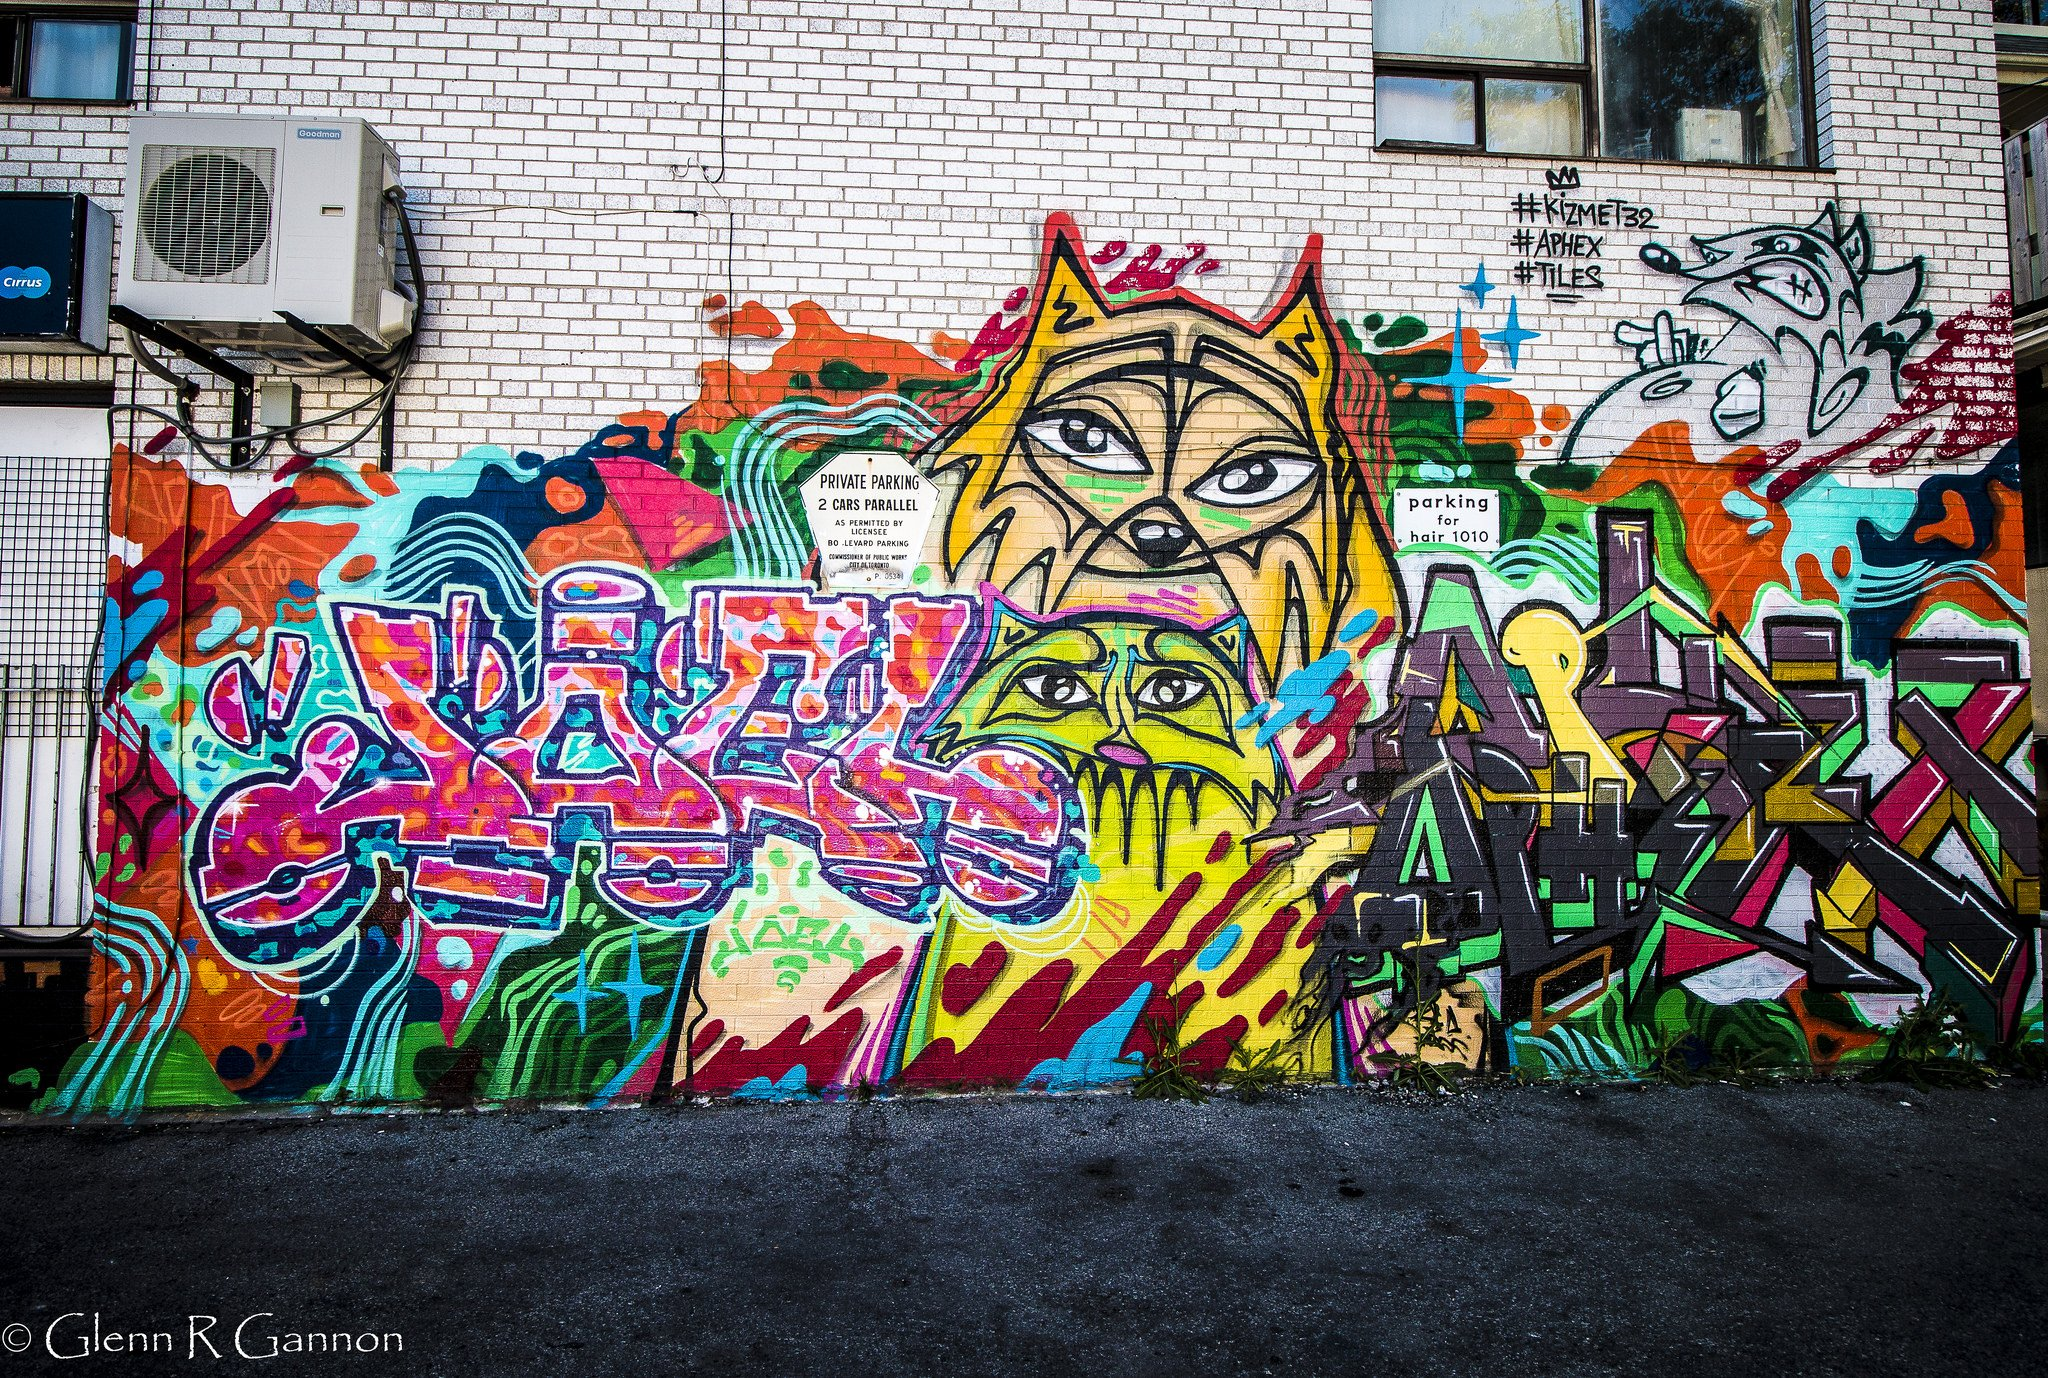 graffiti hd backgrounds 41 wallpapers � adorable wallpapers